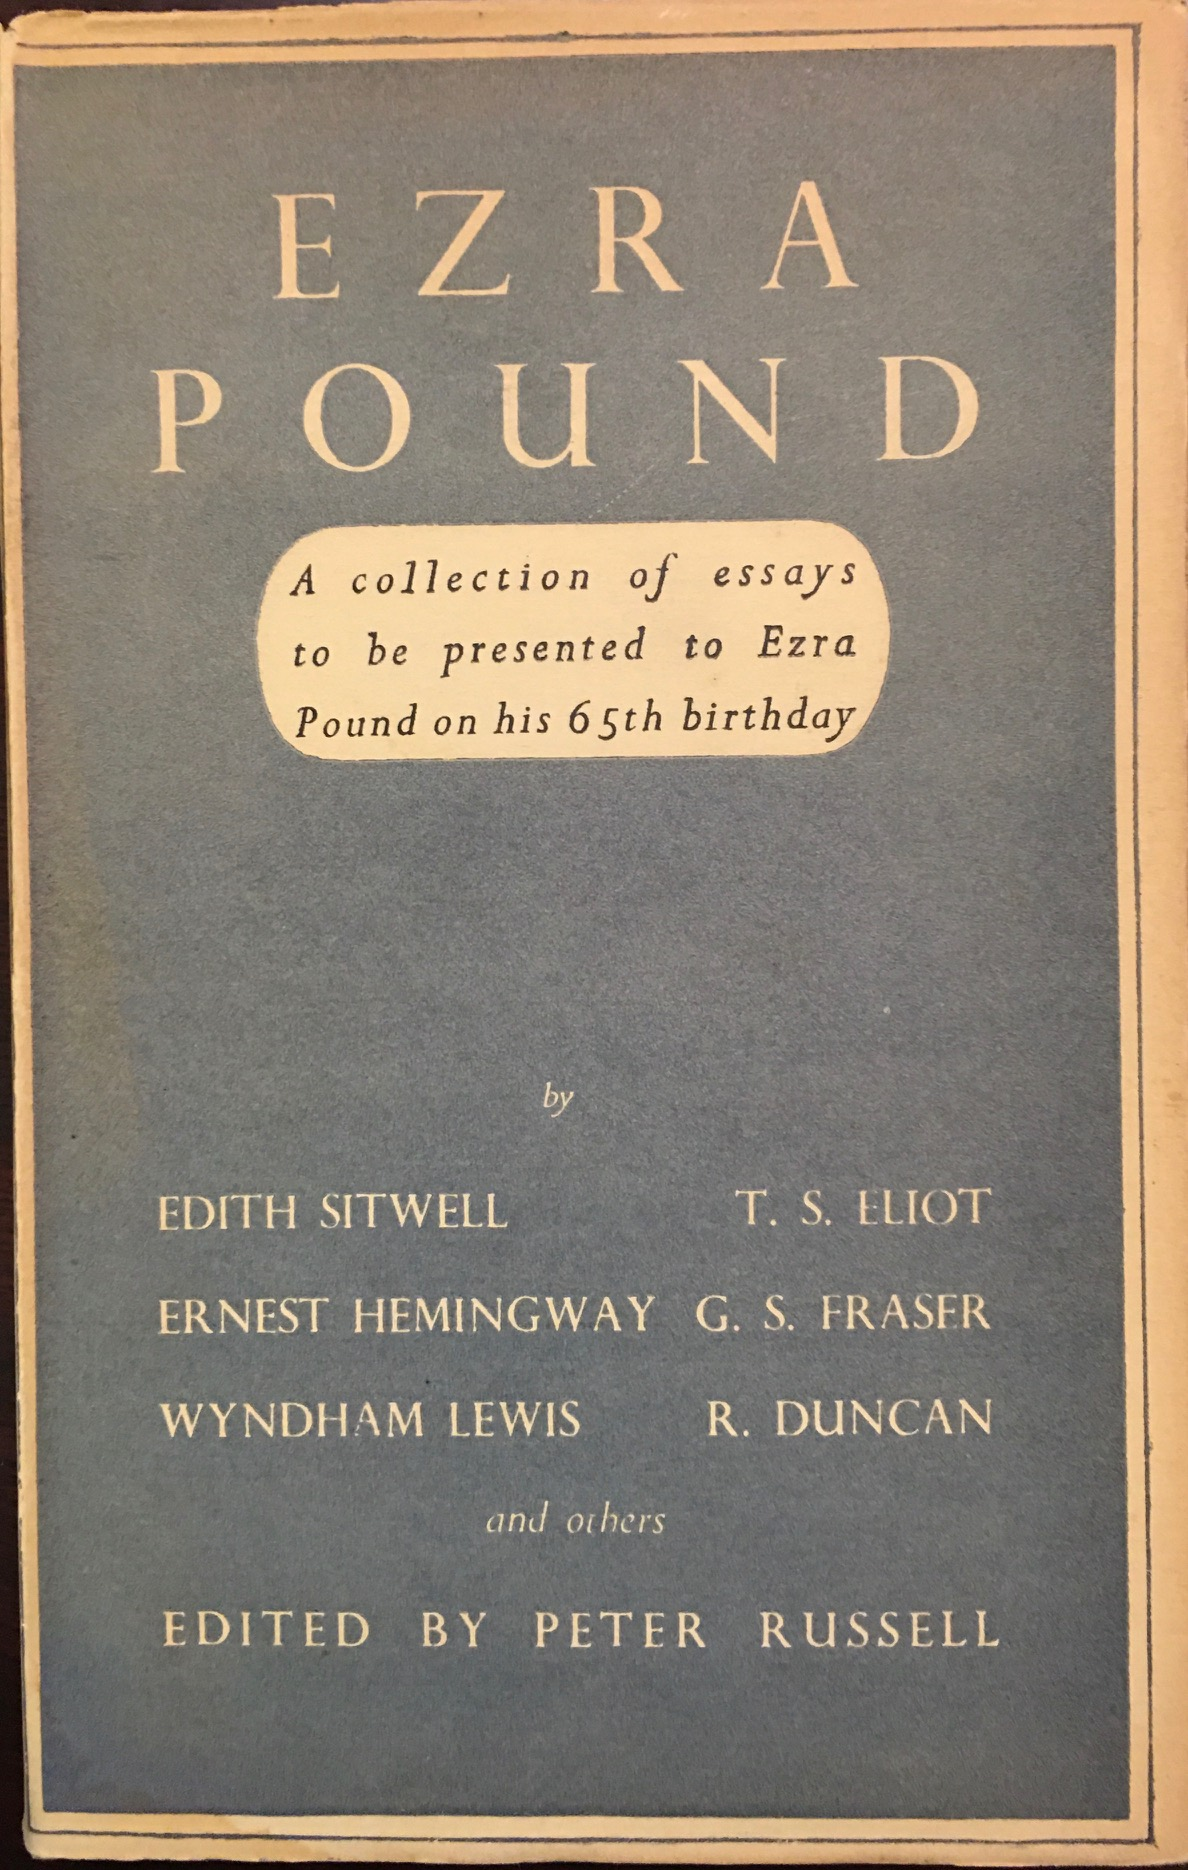 Image for Ezra Pound: a Collection of Essays Edited By Peter Russell to Be Presented to Ezra Pound on His Sixty-Fifth Birthday